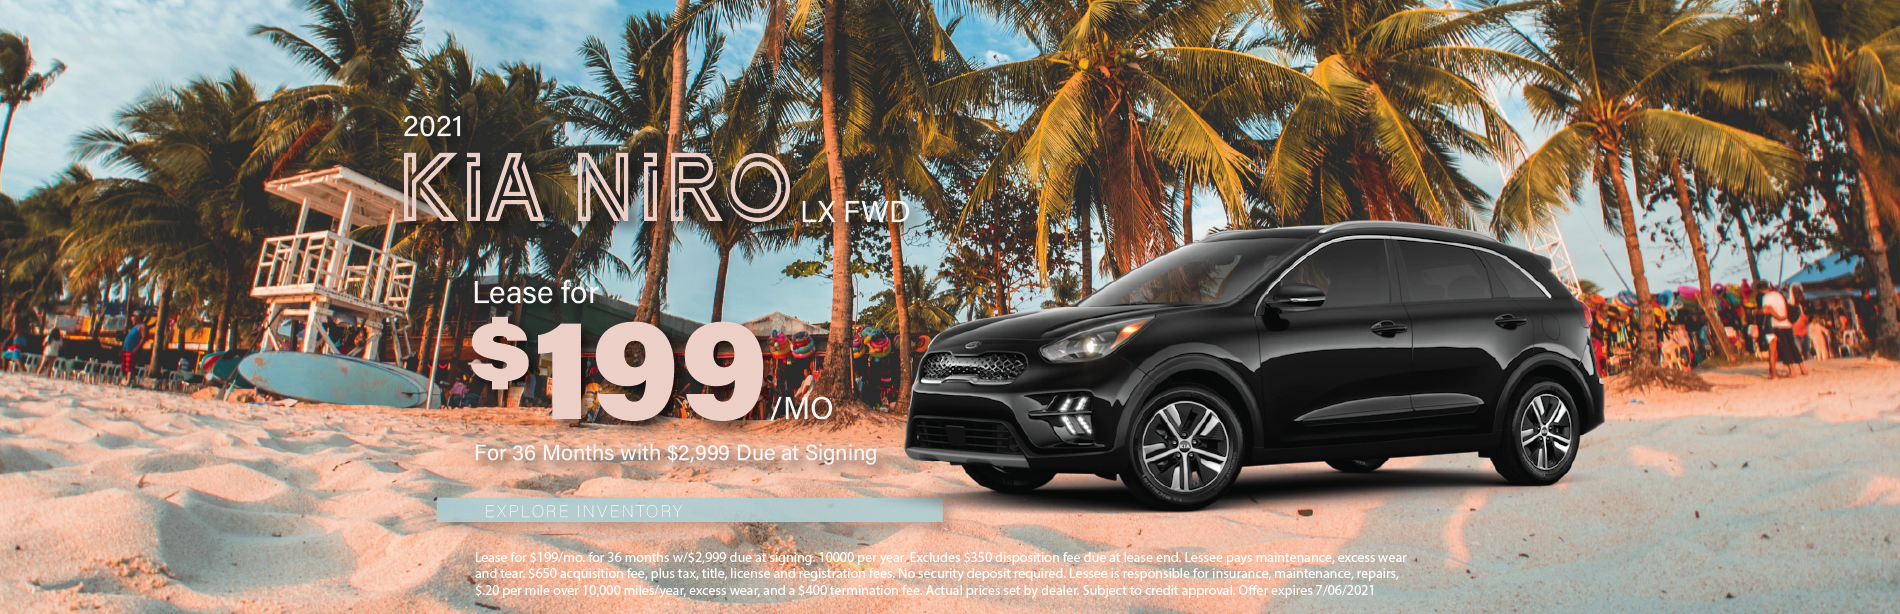 Lafontaine Kia Niro – May